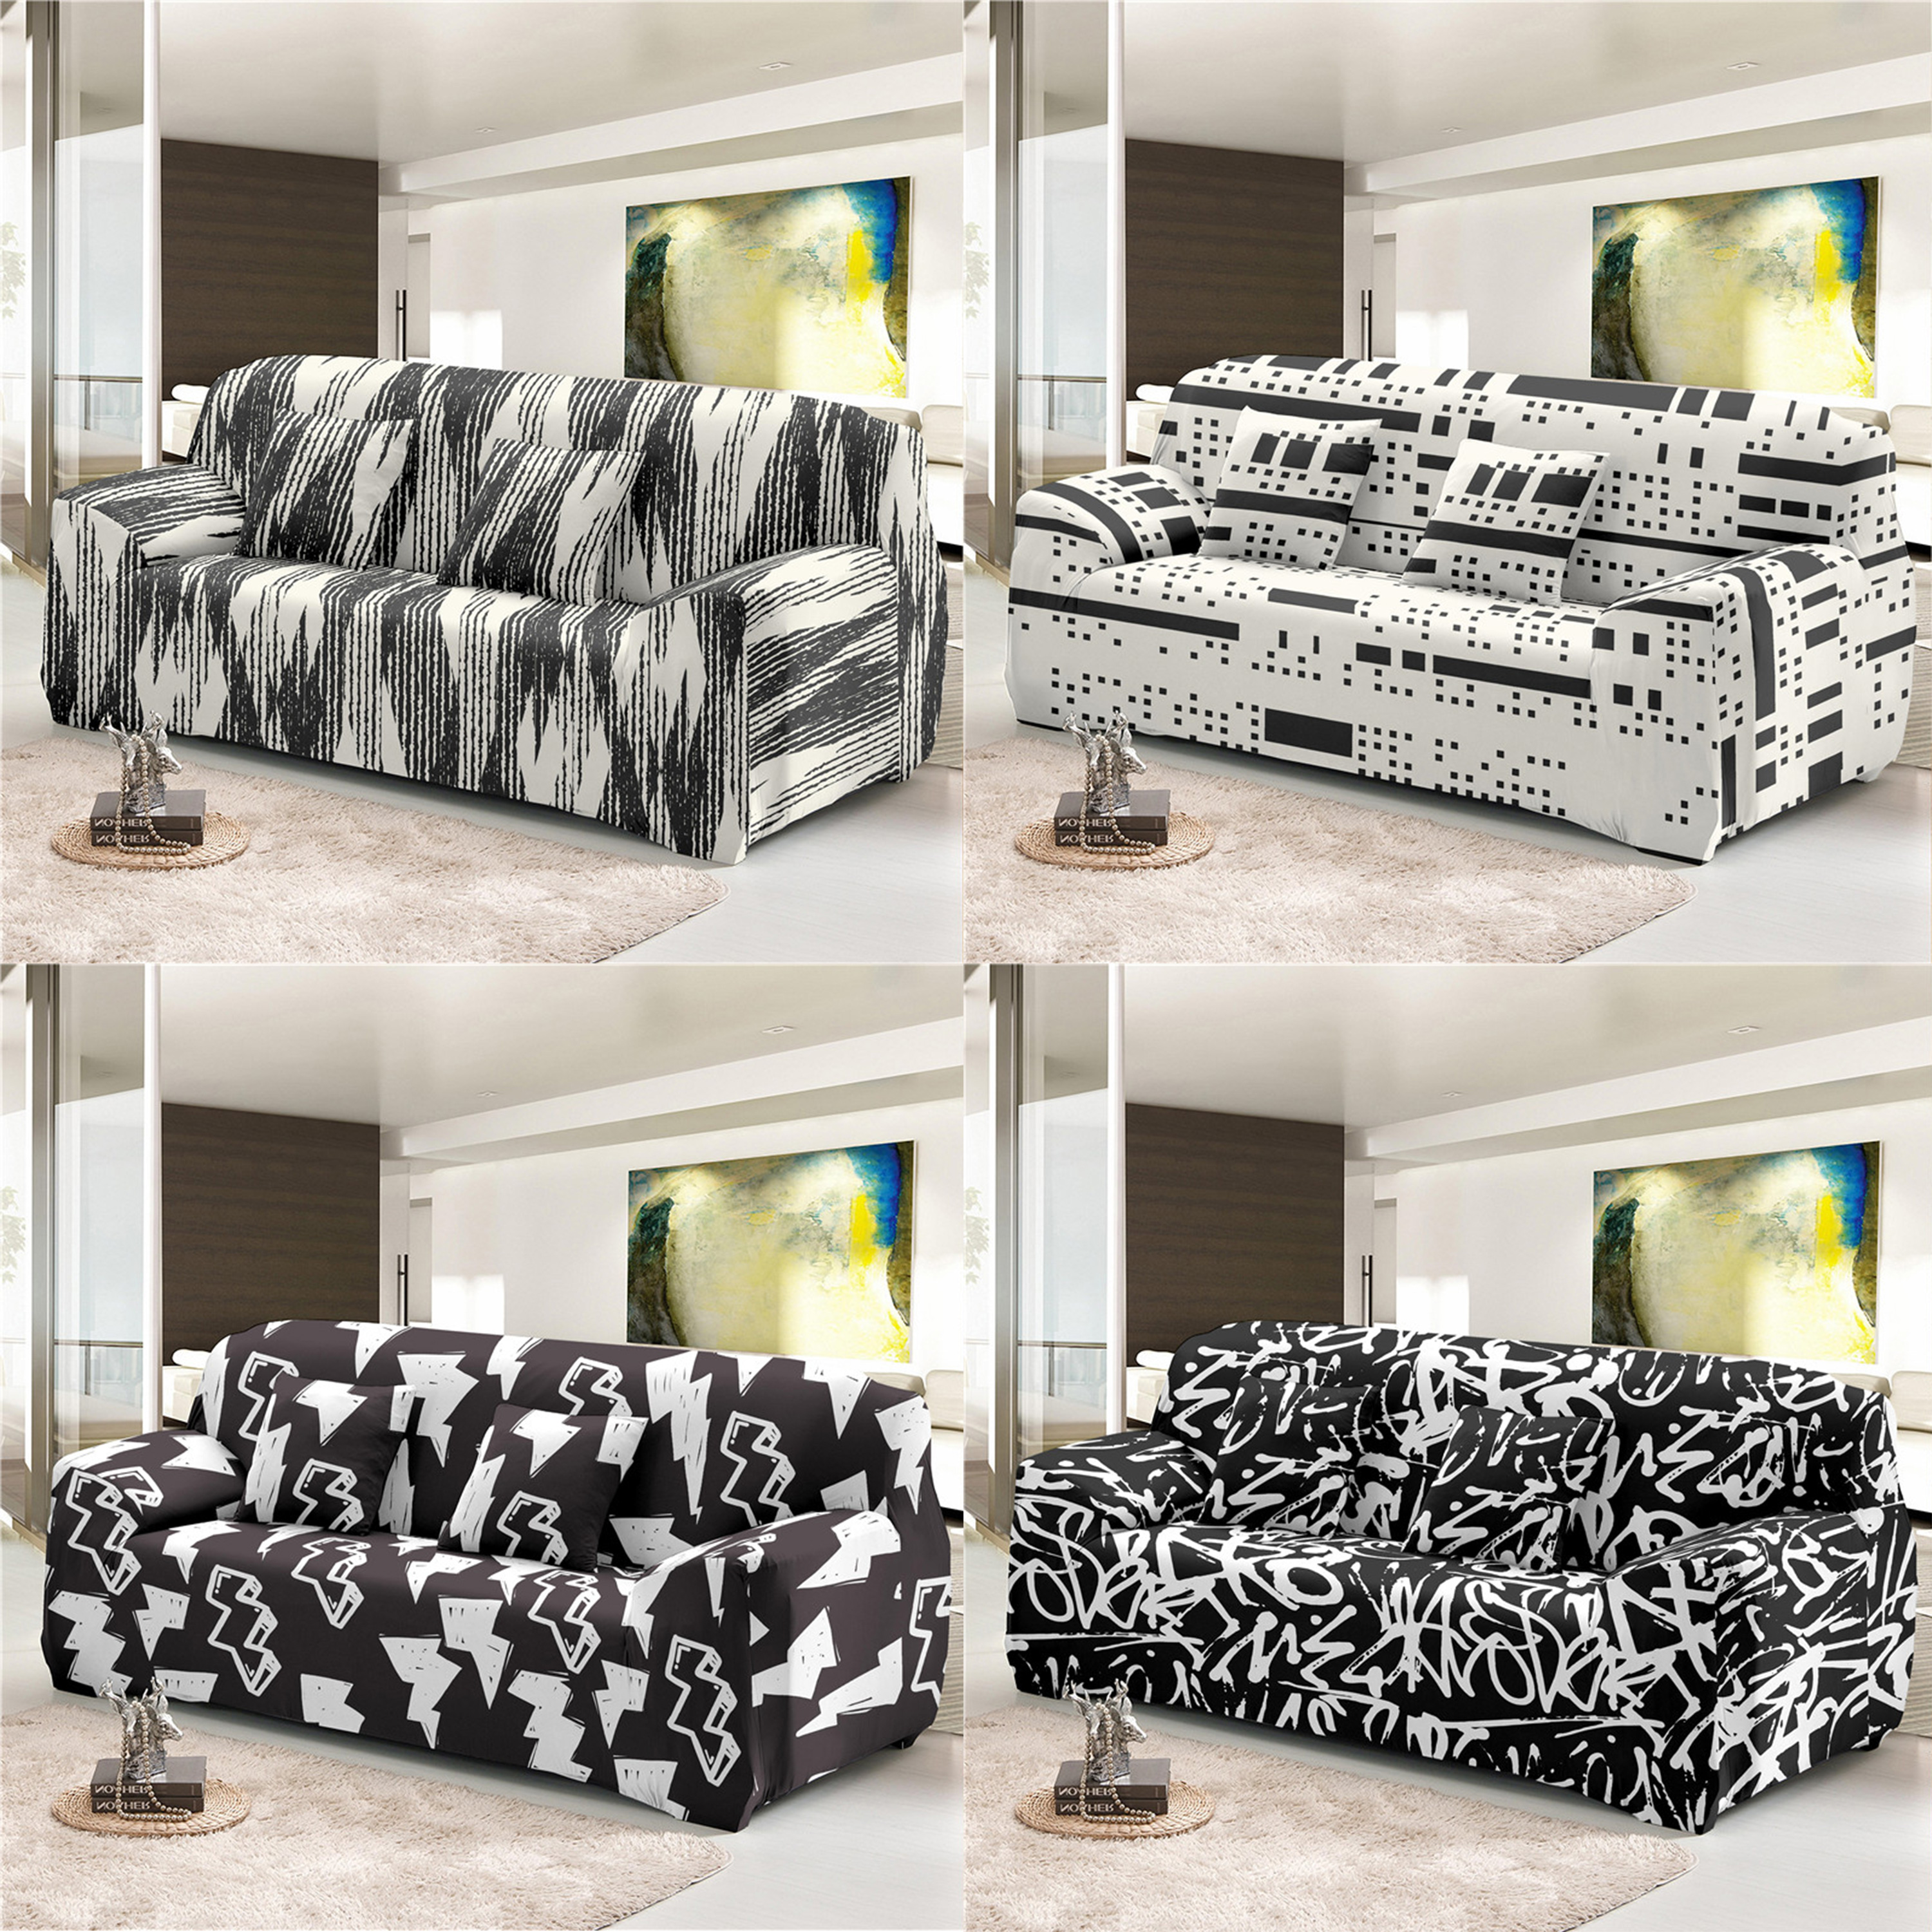 Picture of: Zeimon Geometric Sofa Cover Black White All Inclusive Slip Resistant Sectional Couch Cover Loveseat Home Decor For Living Room Sofa Cover Home Garden Aliexpress